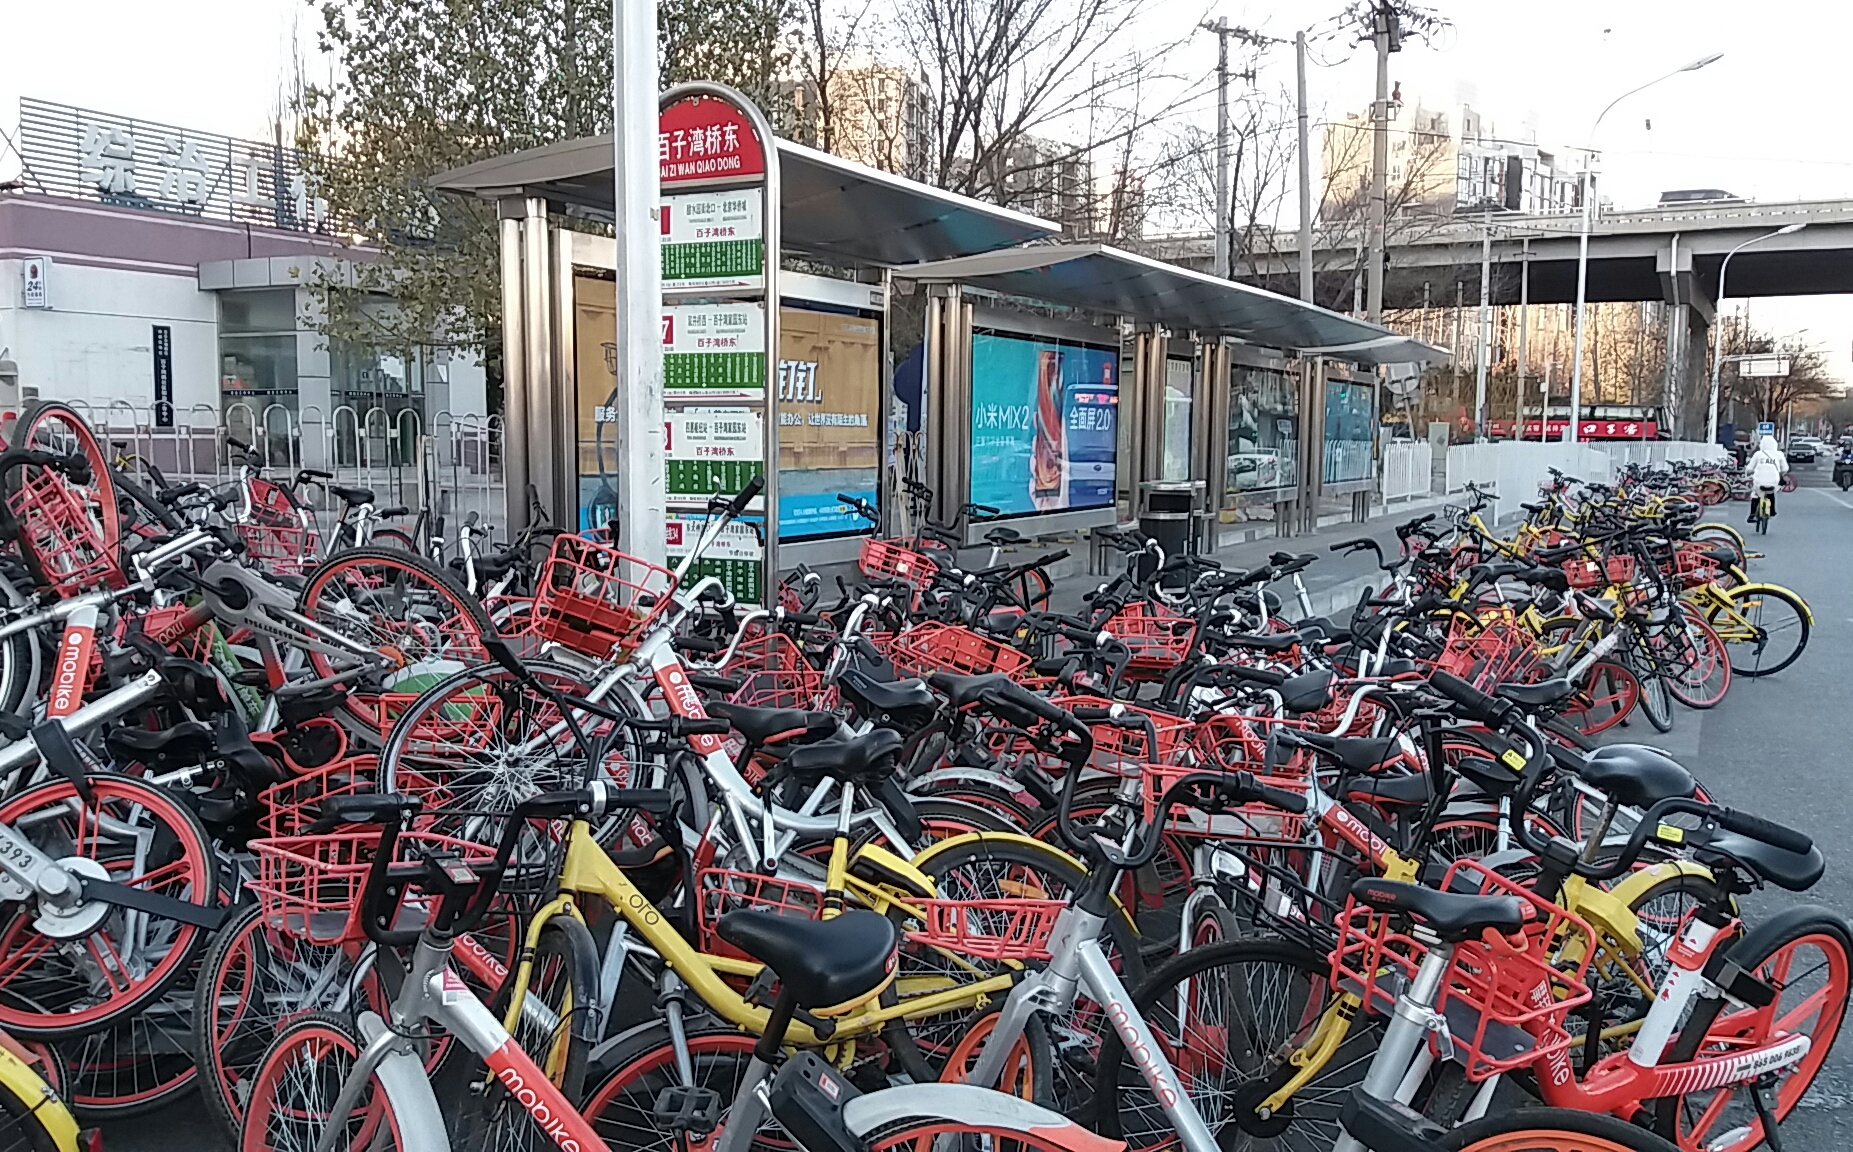 bicycle sharing system in wuhan china A bicycle-sharing system, public bicycle system, or bike-share scheme, is a service in which bicycles are made available for shared use to individuals on a short term basis for a price or free many bike share systems allow people to borrow a bike from a dock and return it at another dock belonging to the same system.